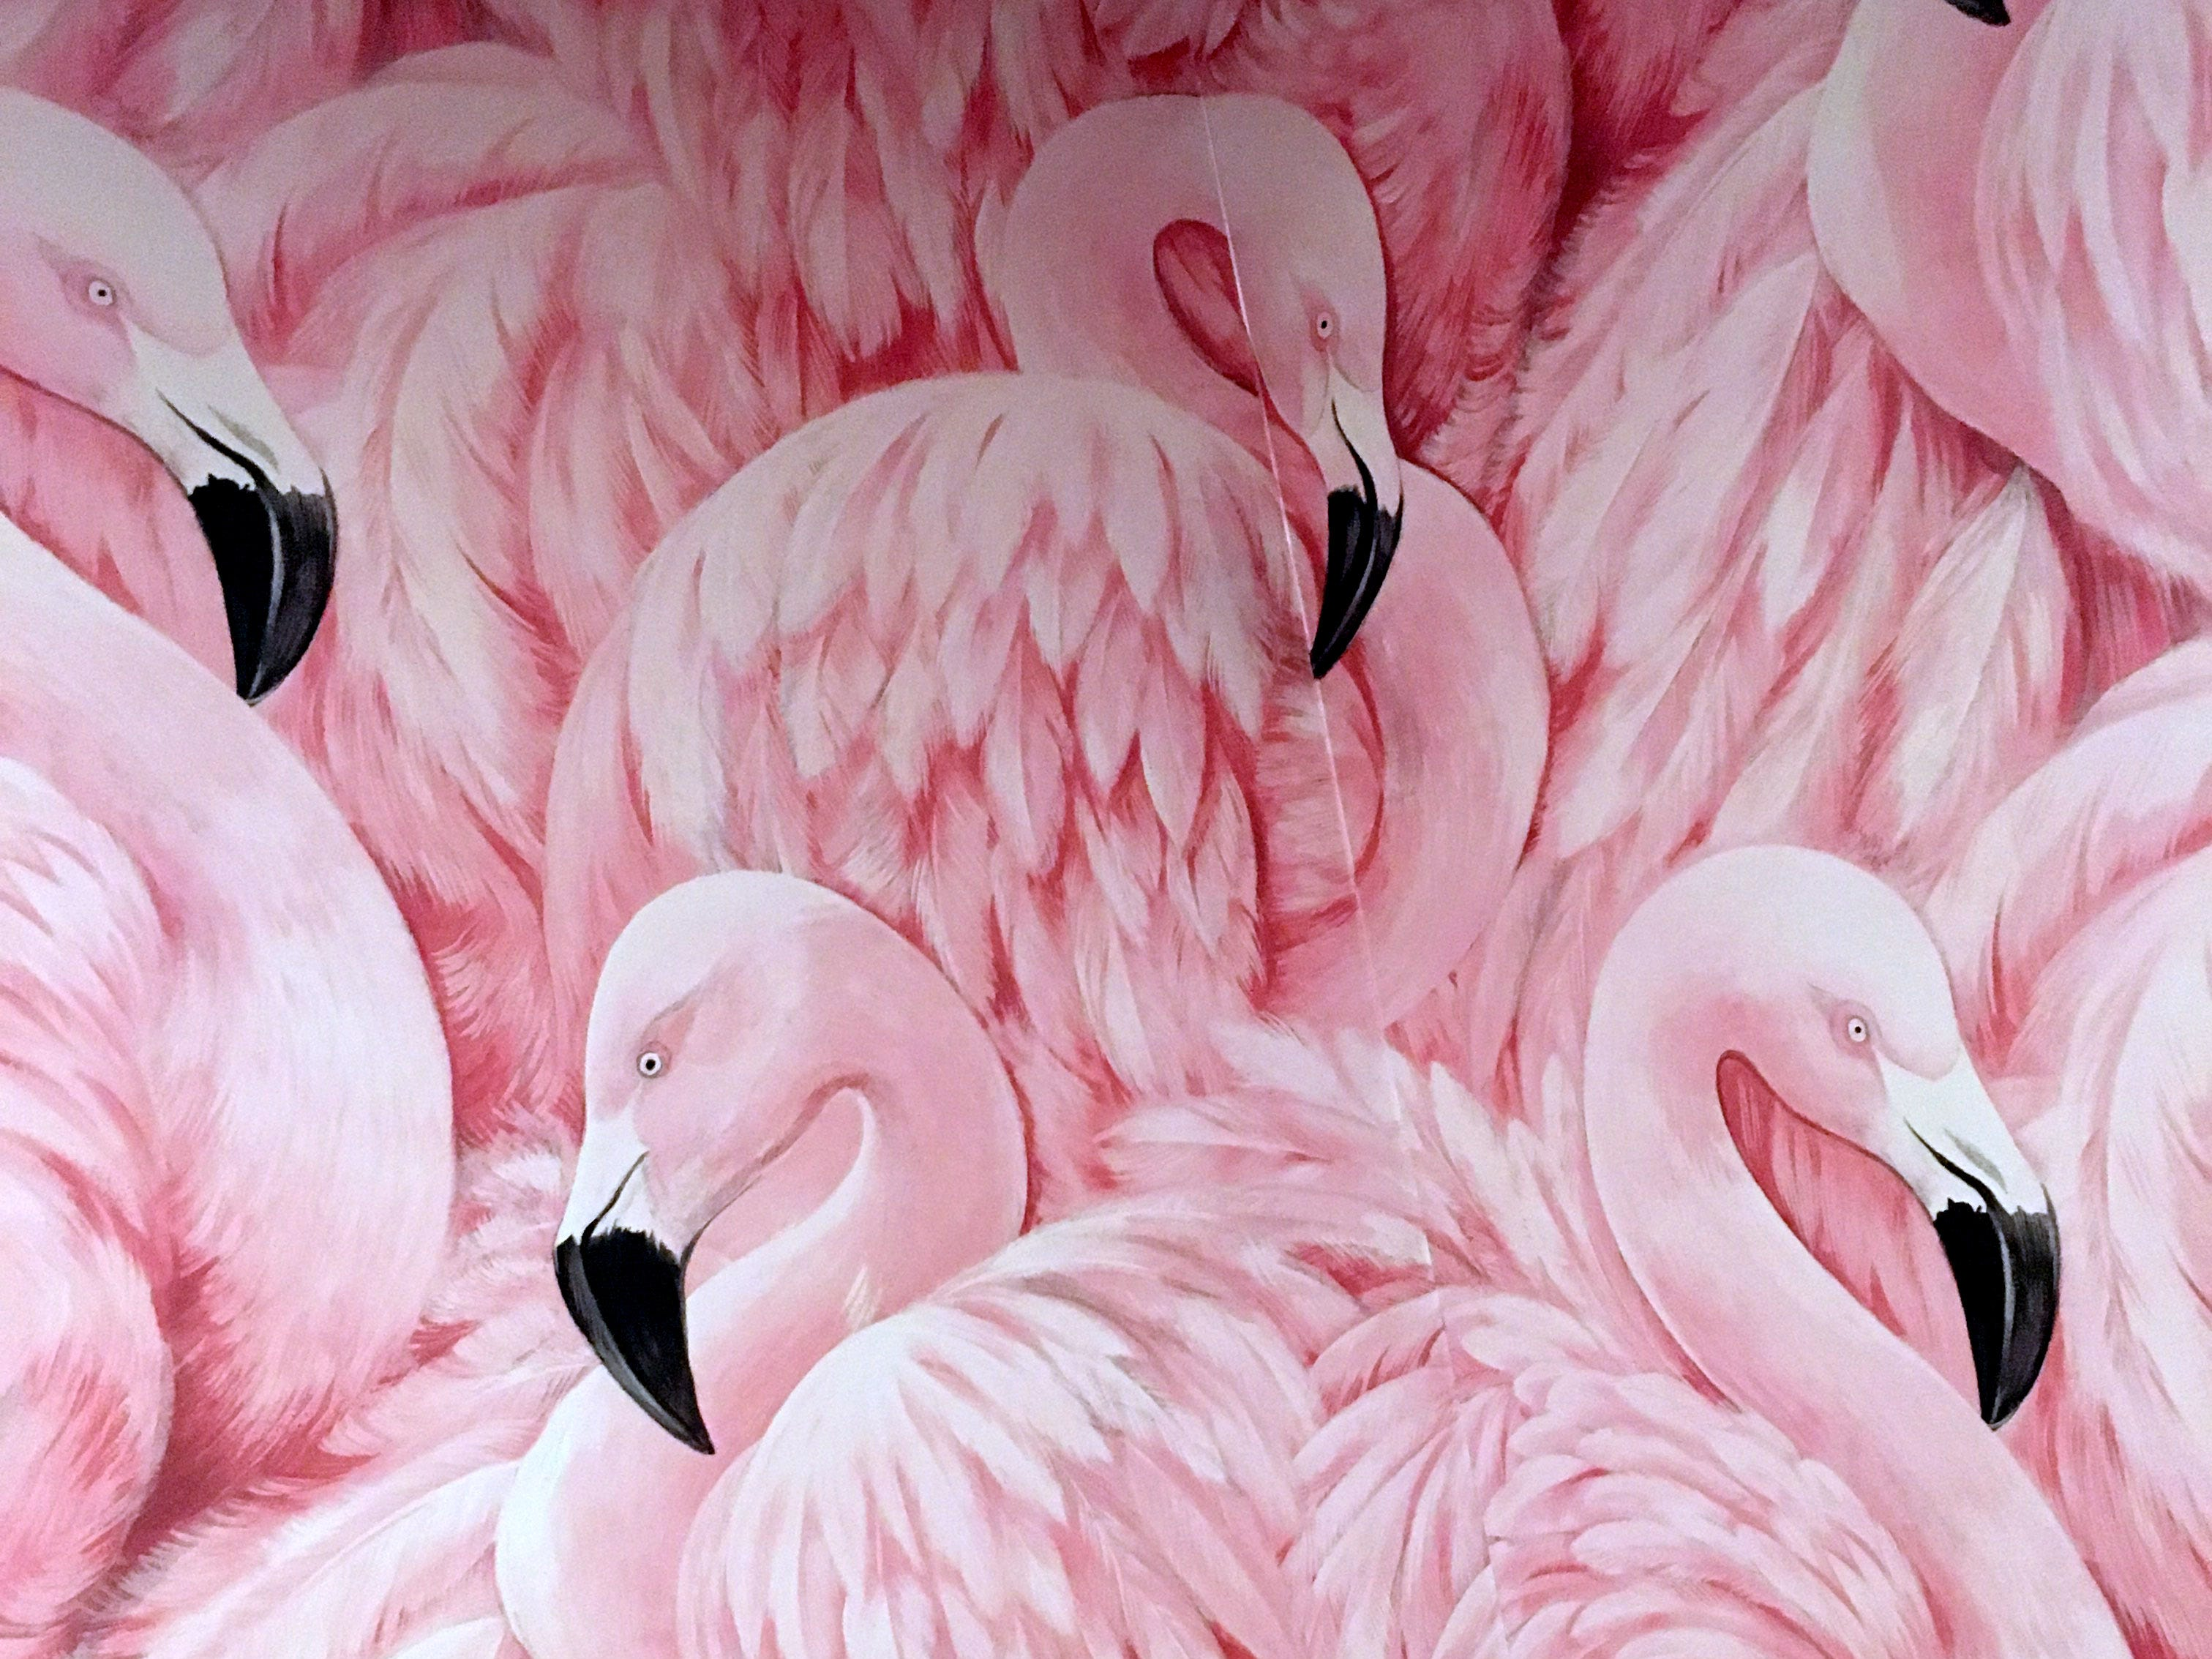 Eugene's in Port Chester March 29, 2019, is the new Dave DiBari restaurant. The restaurant has a 70s-era basement vibe with wood panels, floral wallpaper, laminate counters, and their icon is a pink flamingo.